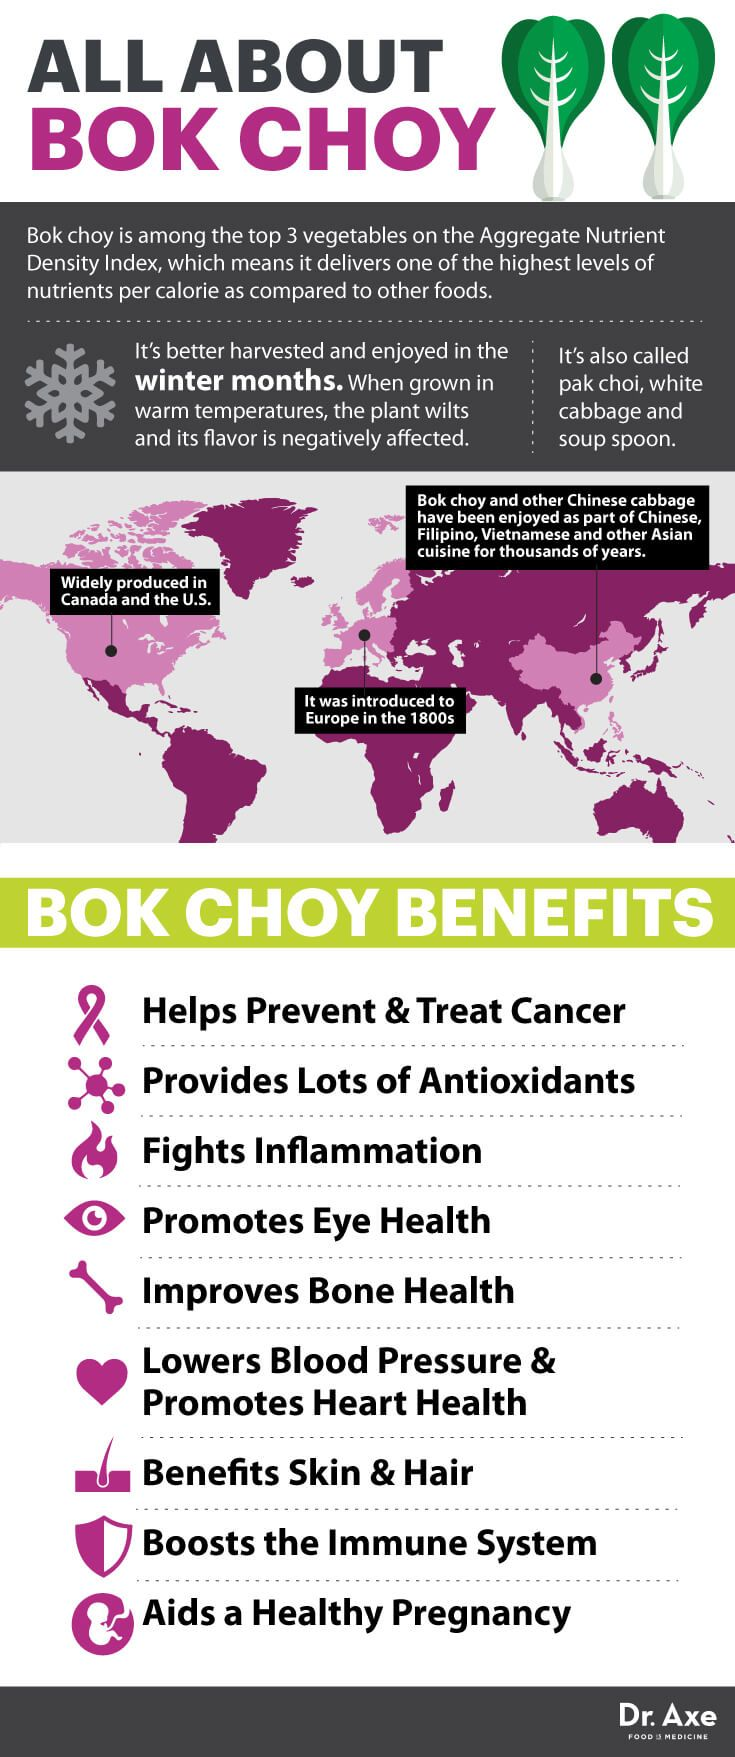 Bok Choy: A Top 3 Nutrient-Dense Vegetable that Battles Cancer - Dr. Axe